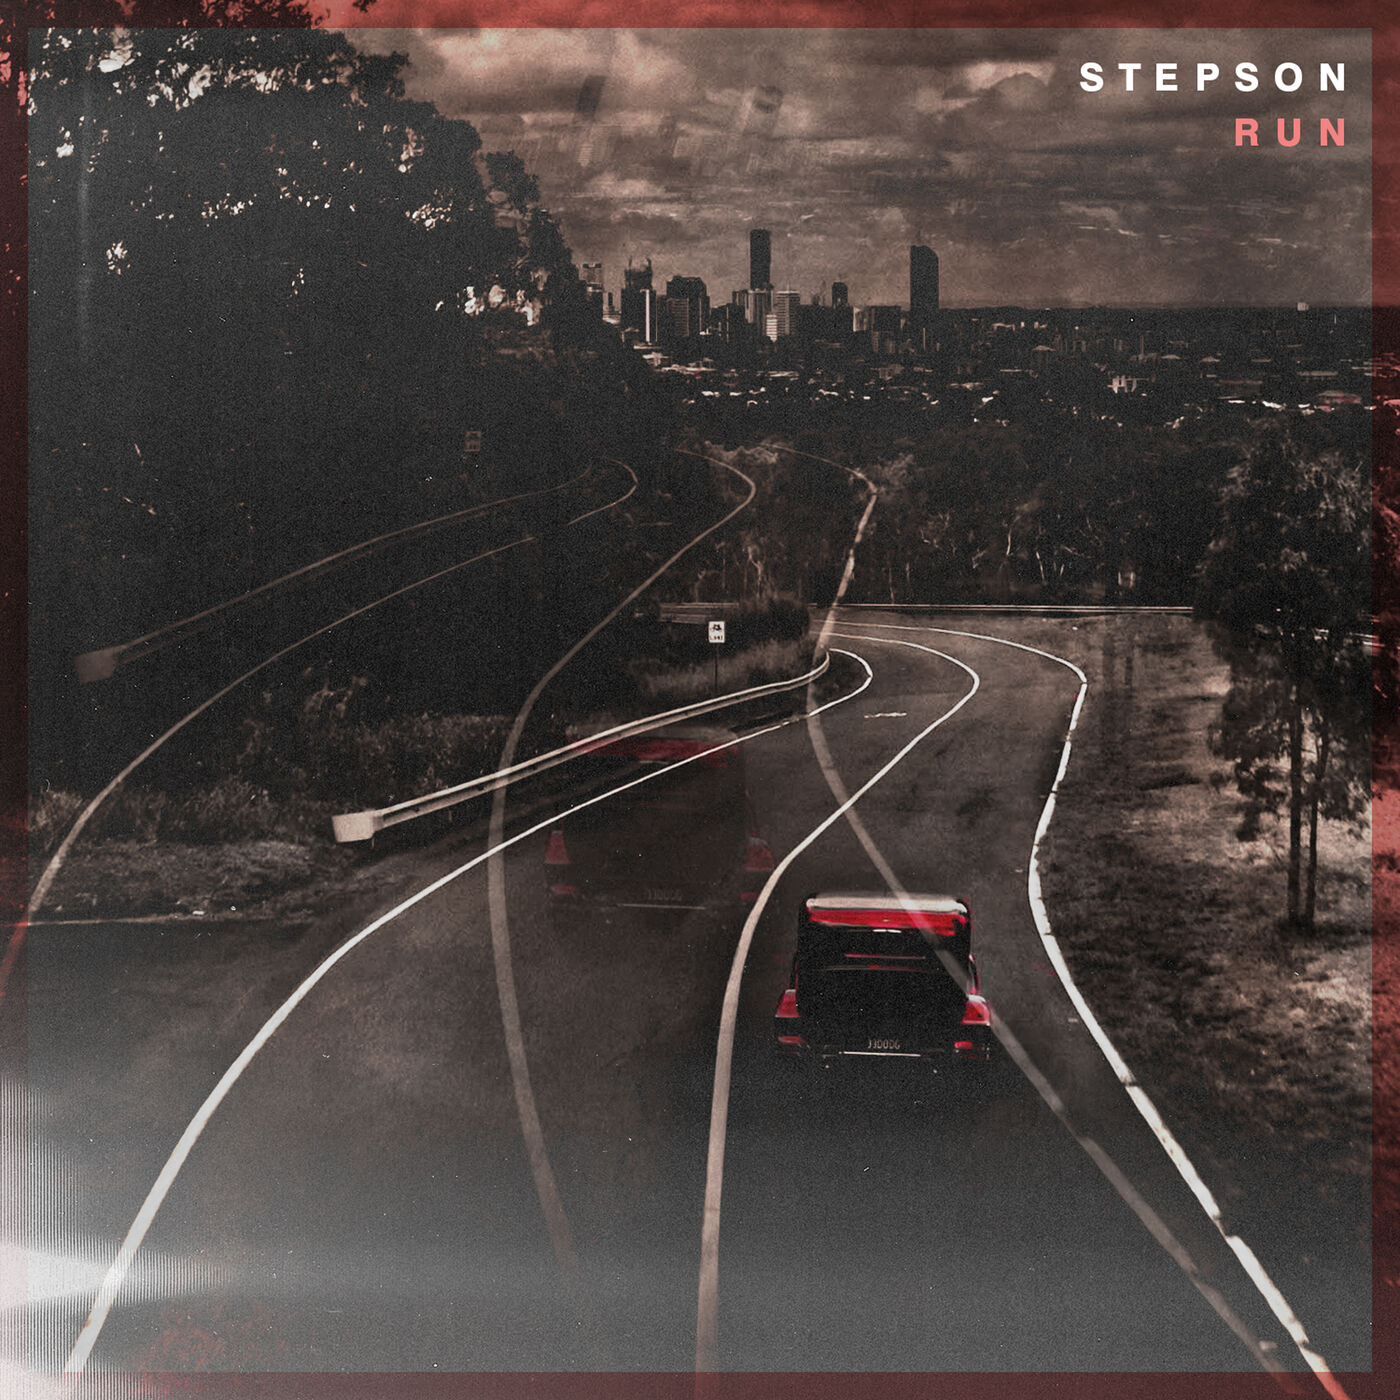 Stepson - Run [single] (2020)